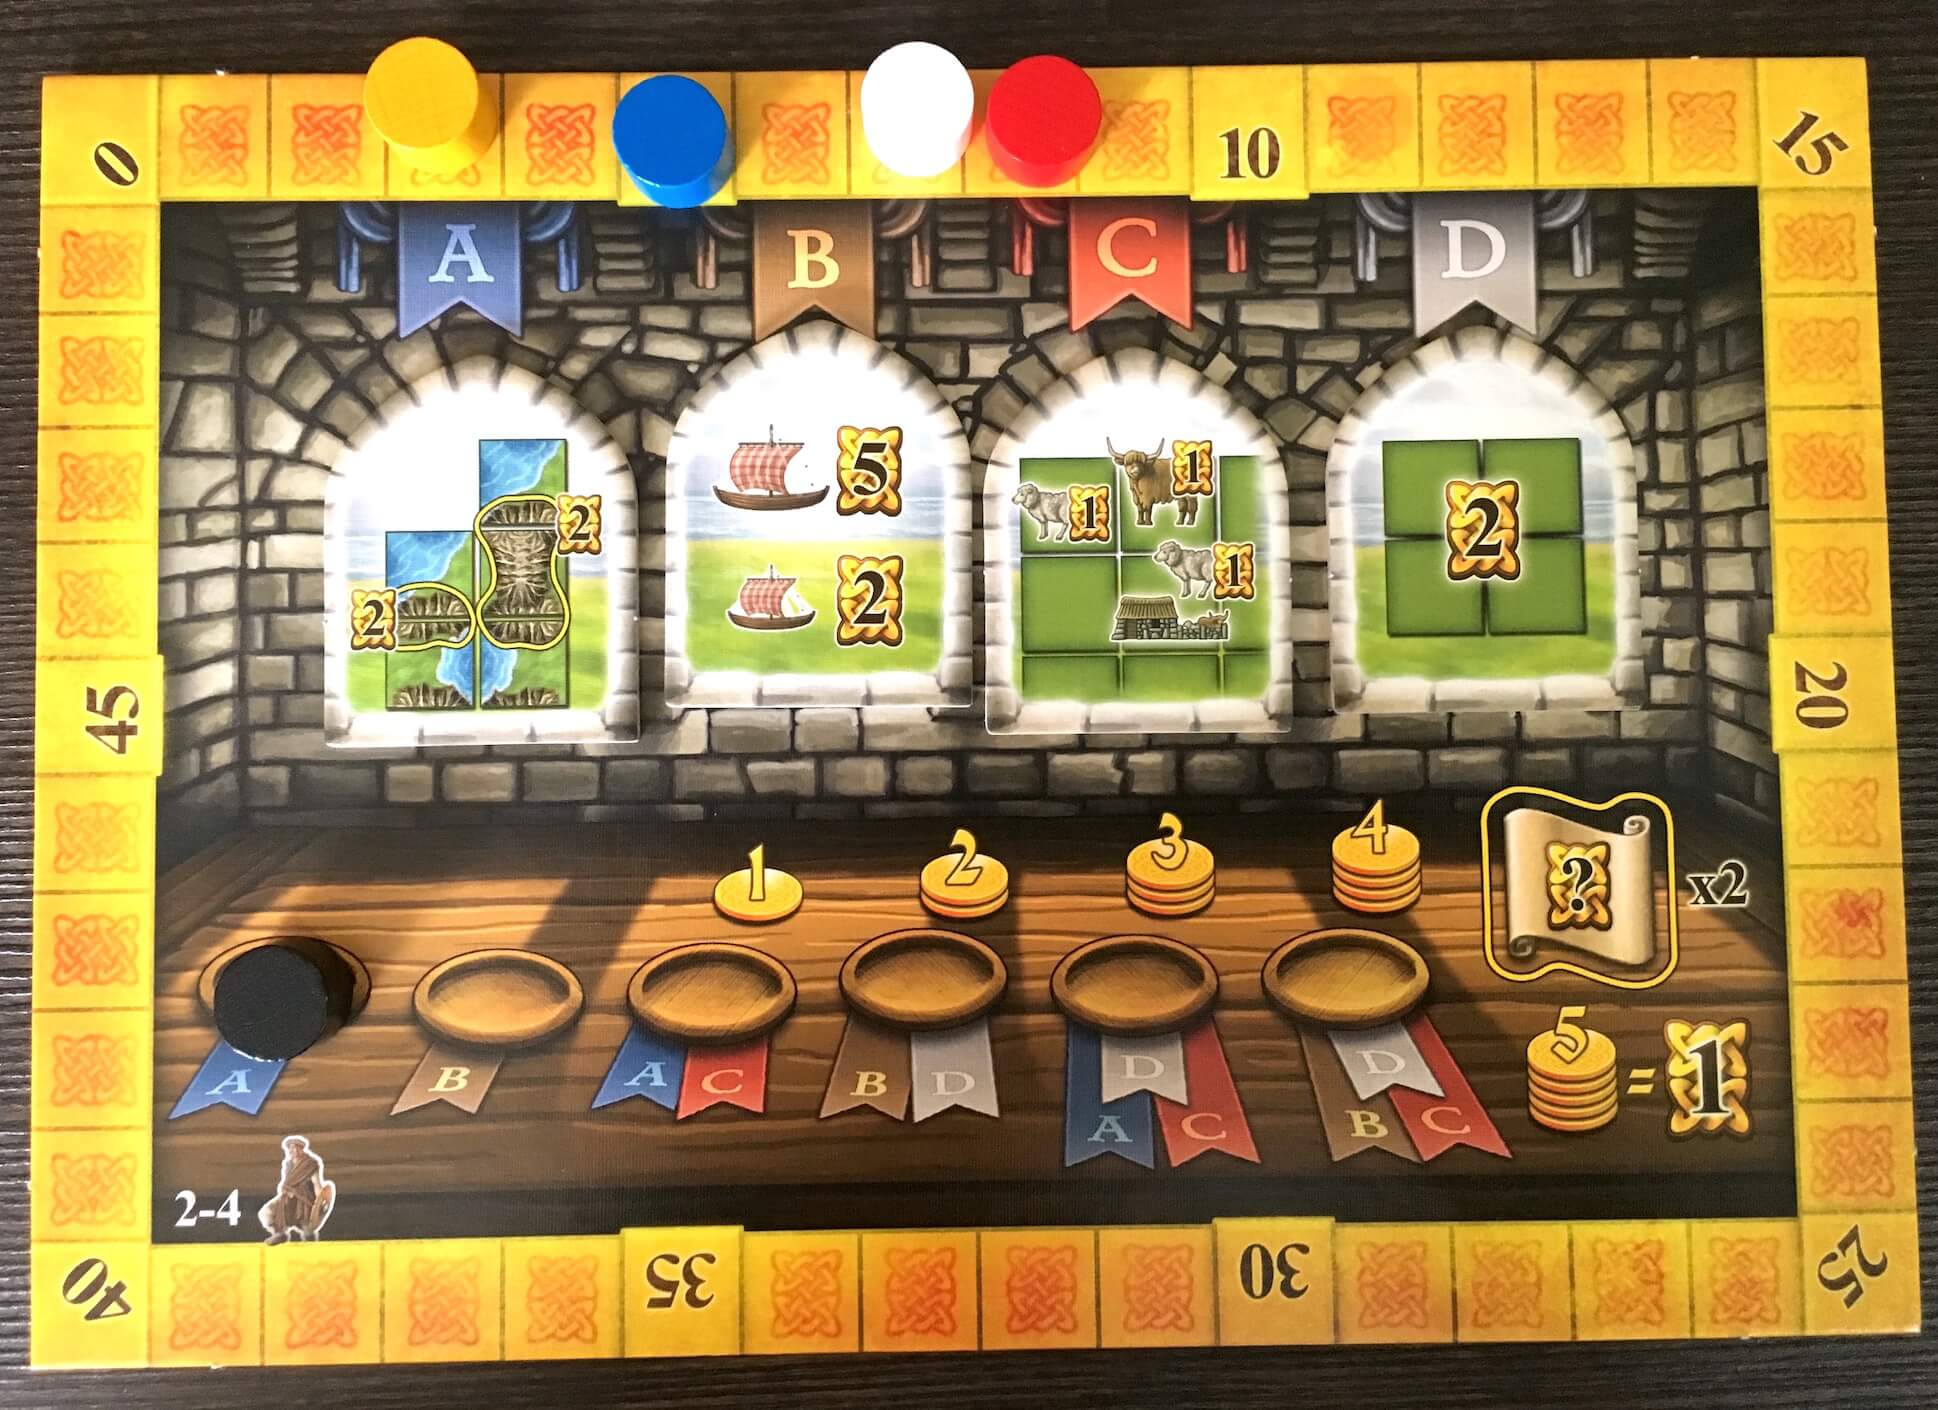 The central board holds the scoring tiles and tracks the progress of the game.